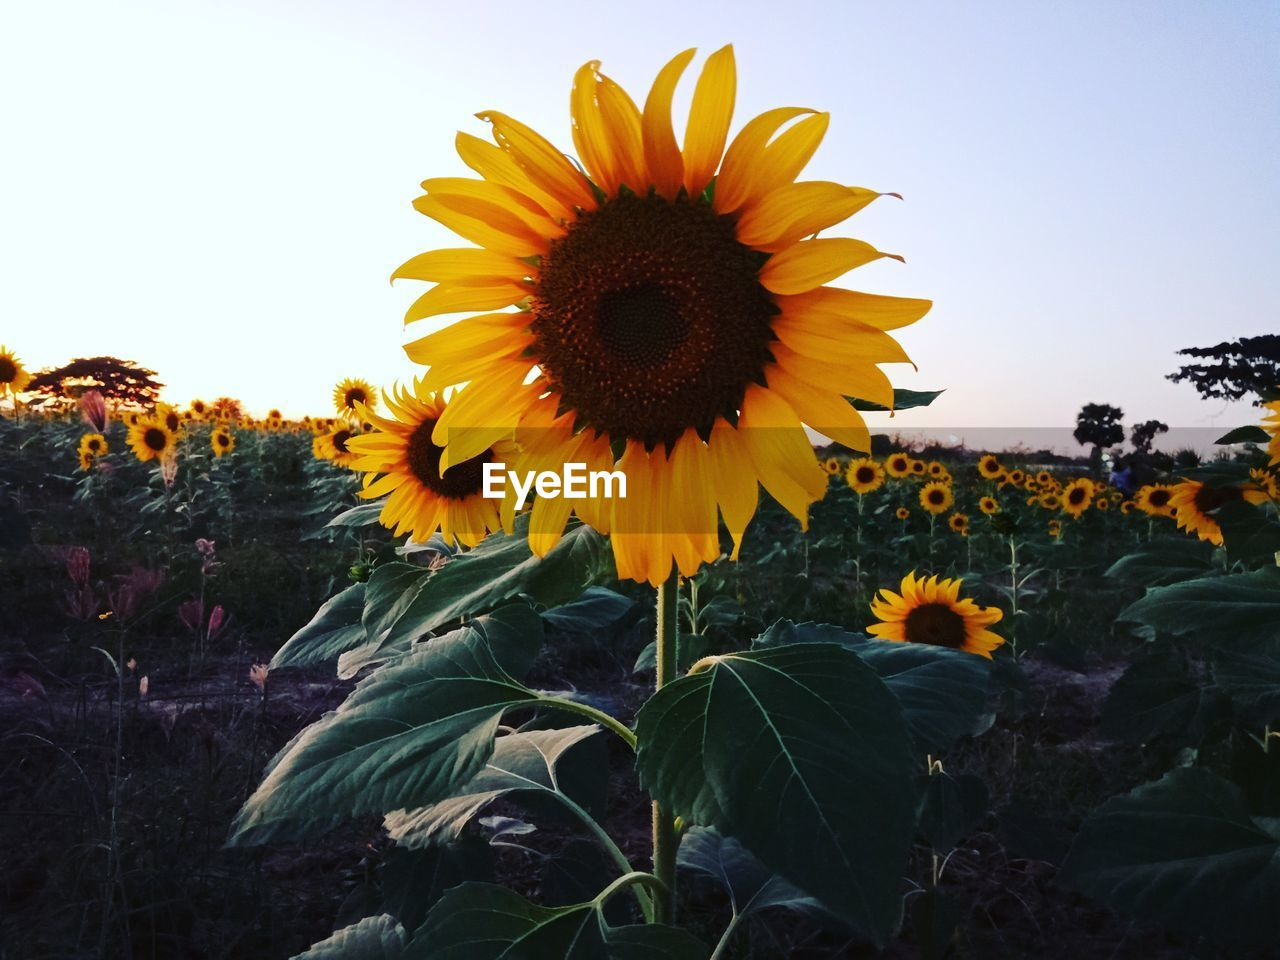 flowering plant, yellow, flower, plant, growth, flower head, freshness, vulnerability, fragility, sunflower, beauty in nature, sky, petal, inflorescence, plant part, leaf, nature, close-up, field, pollen, no people, outdoors